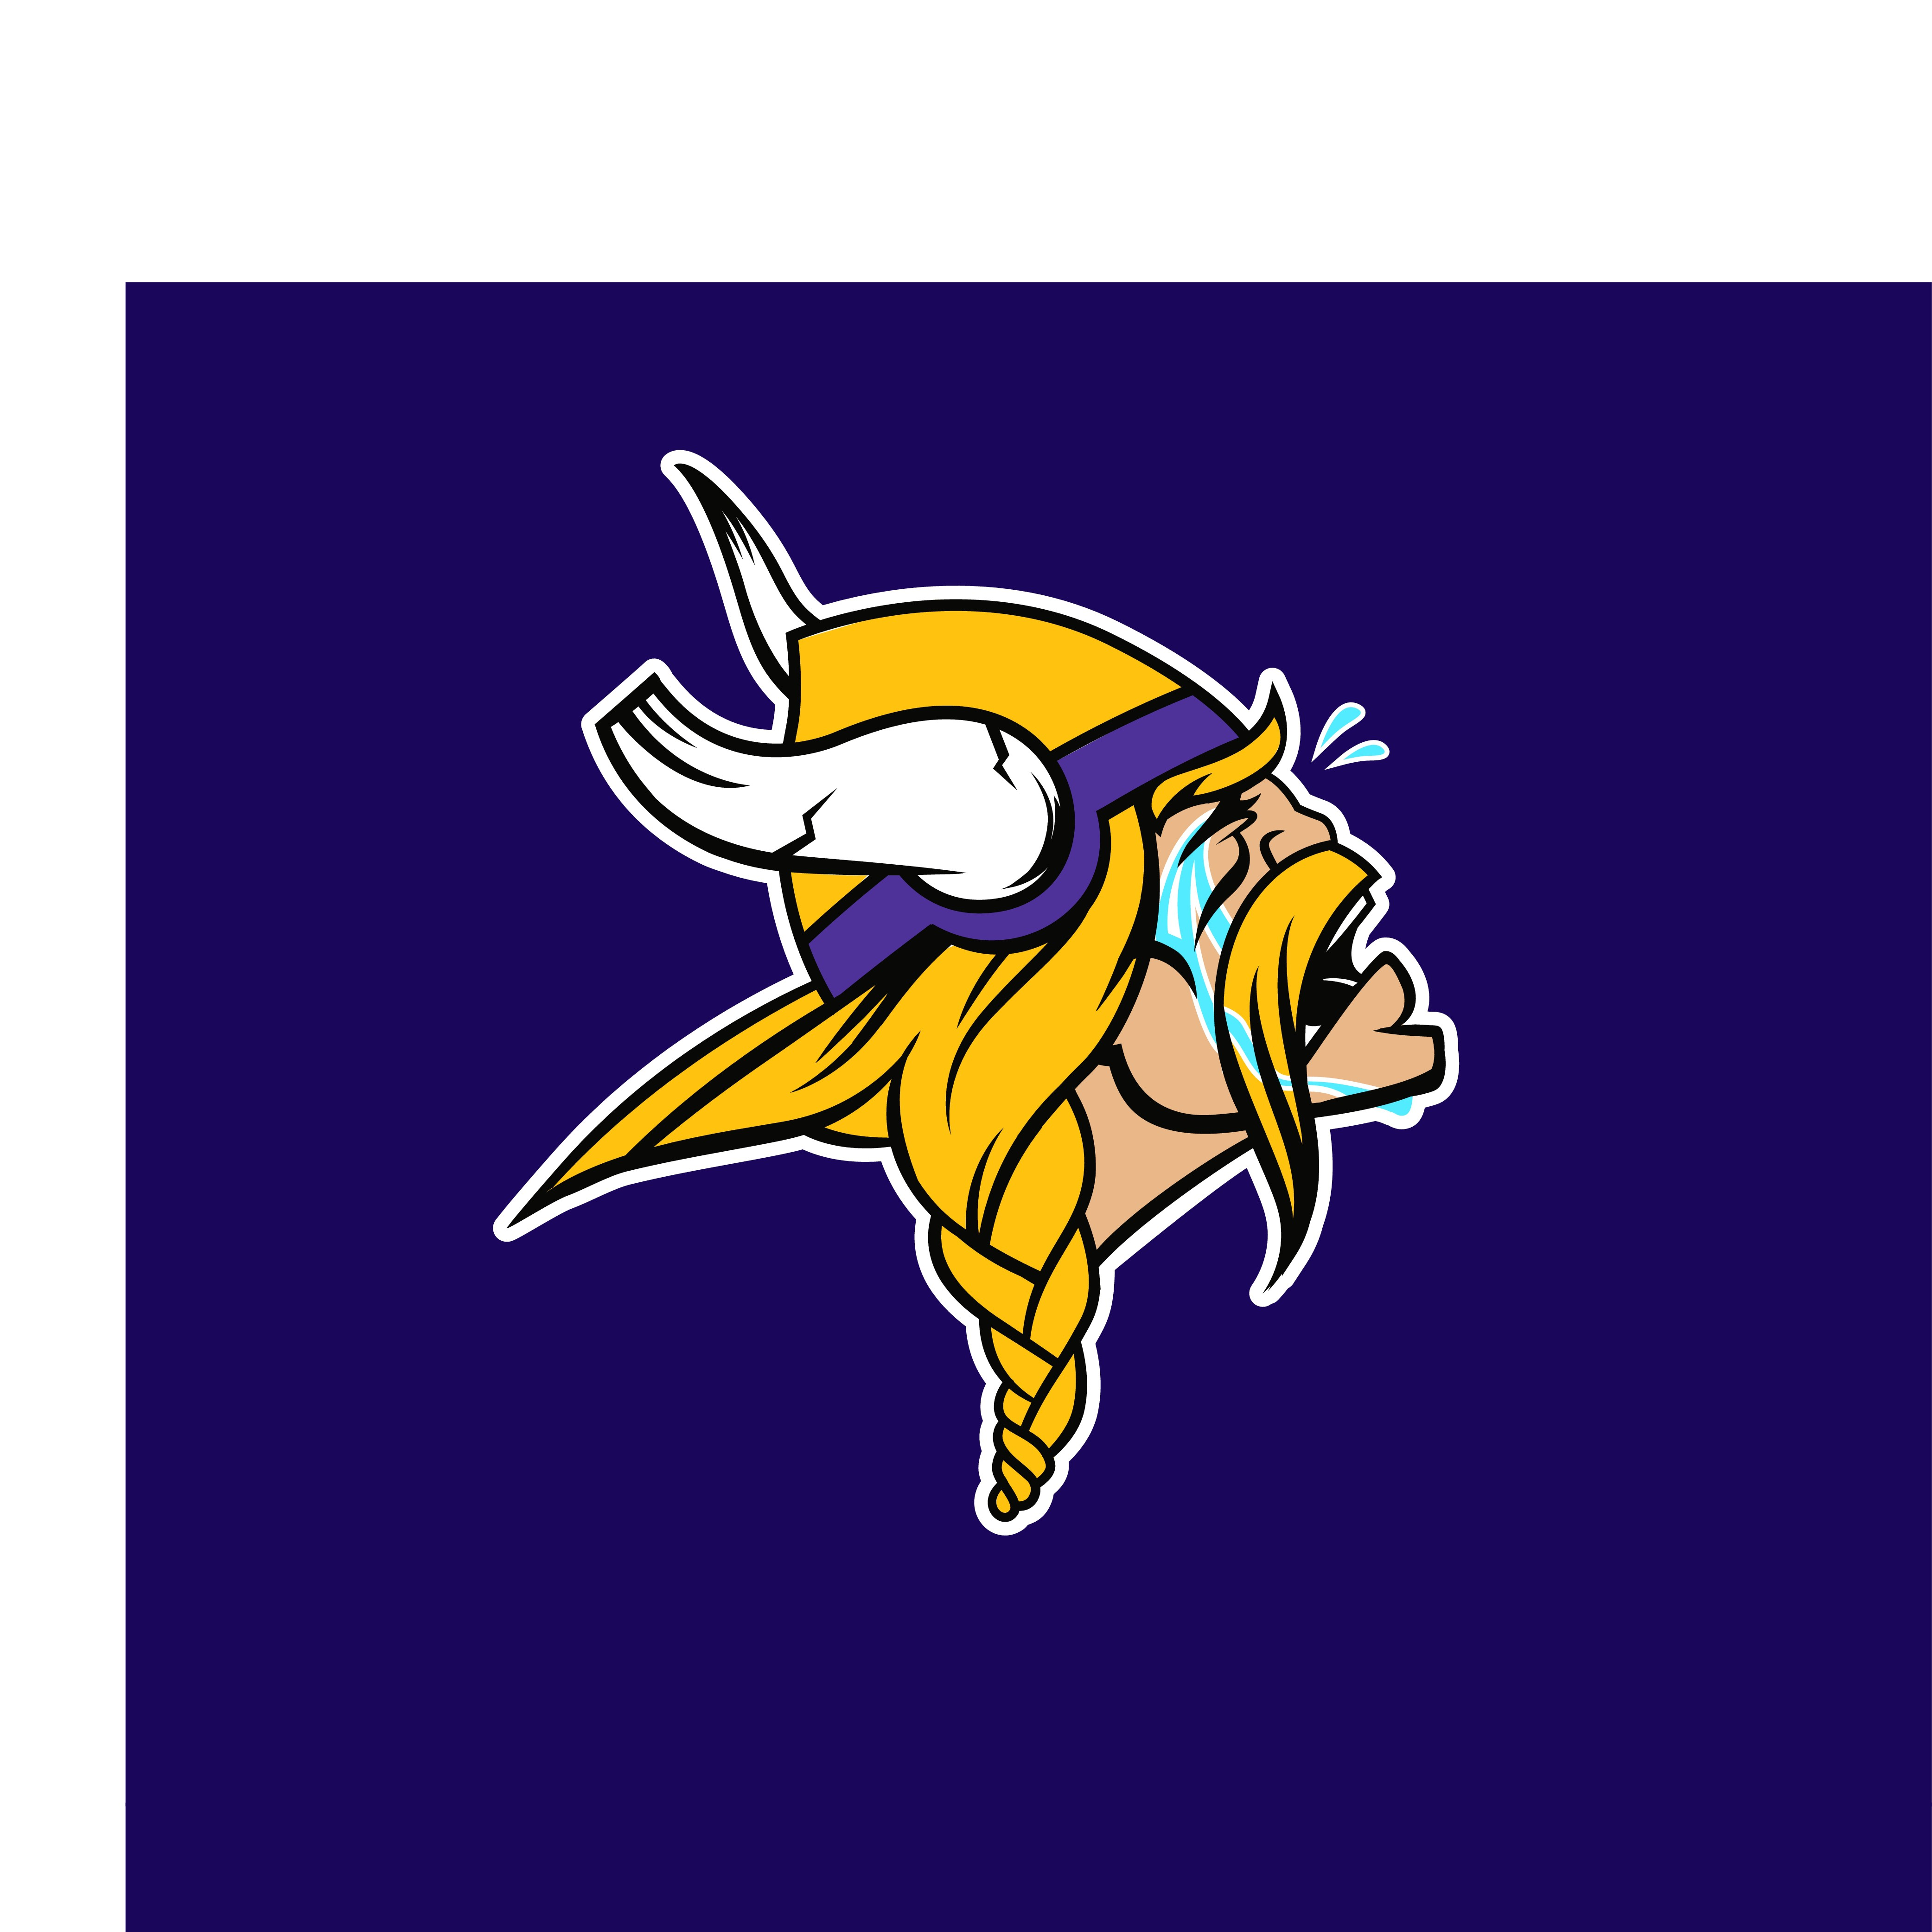 Create the first of a series of NFL parody logos